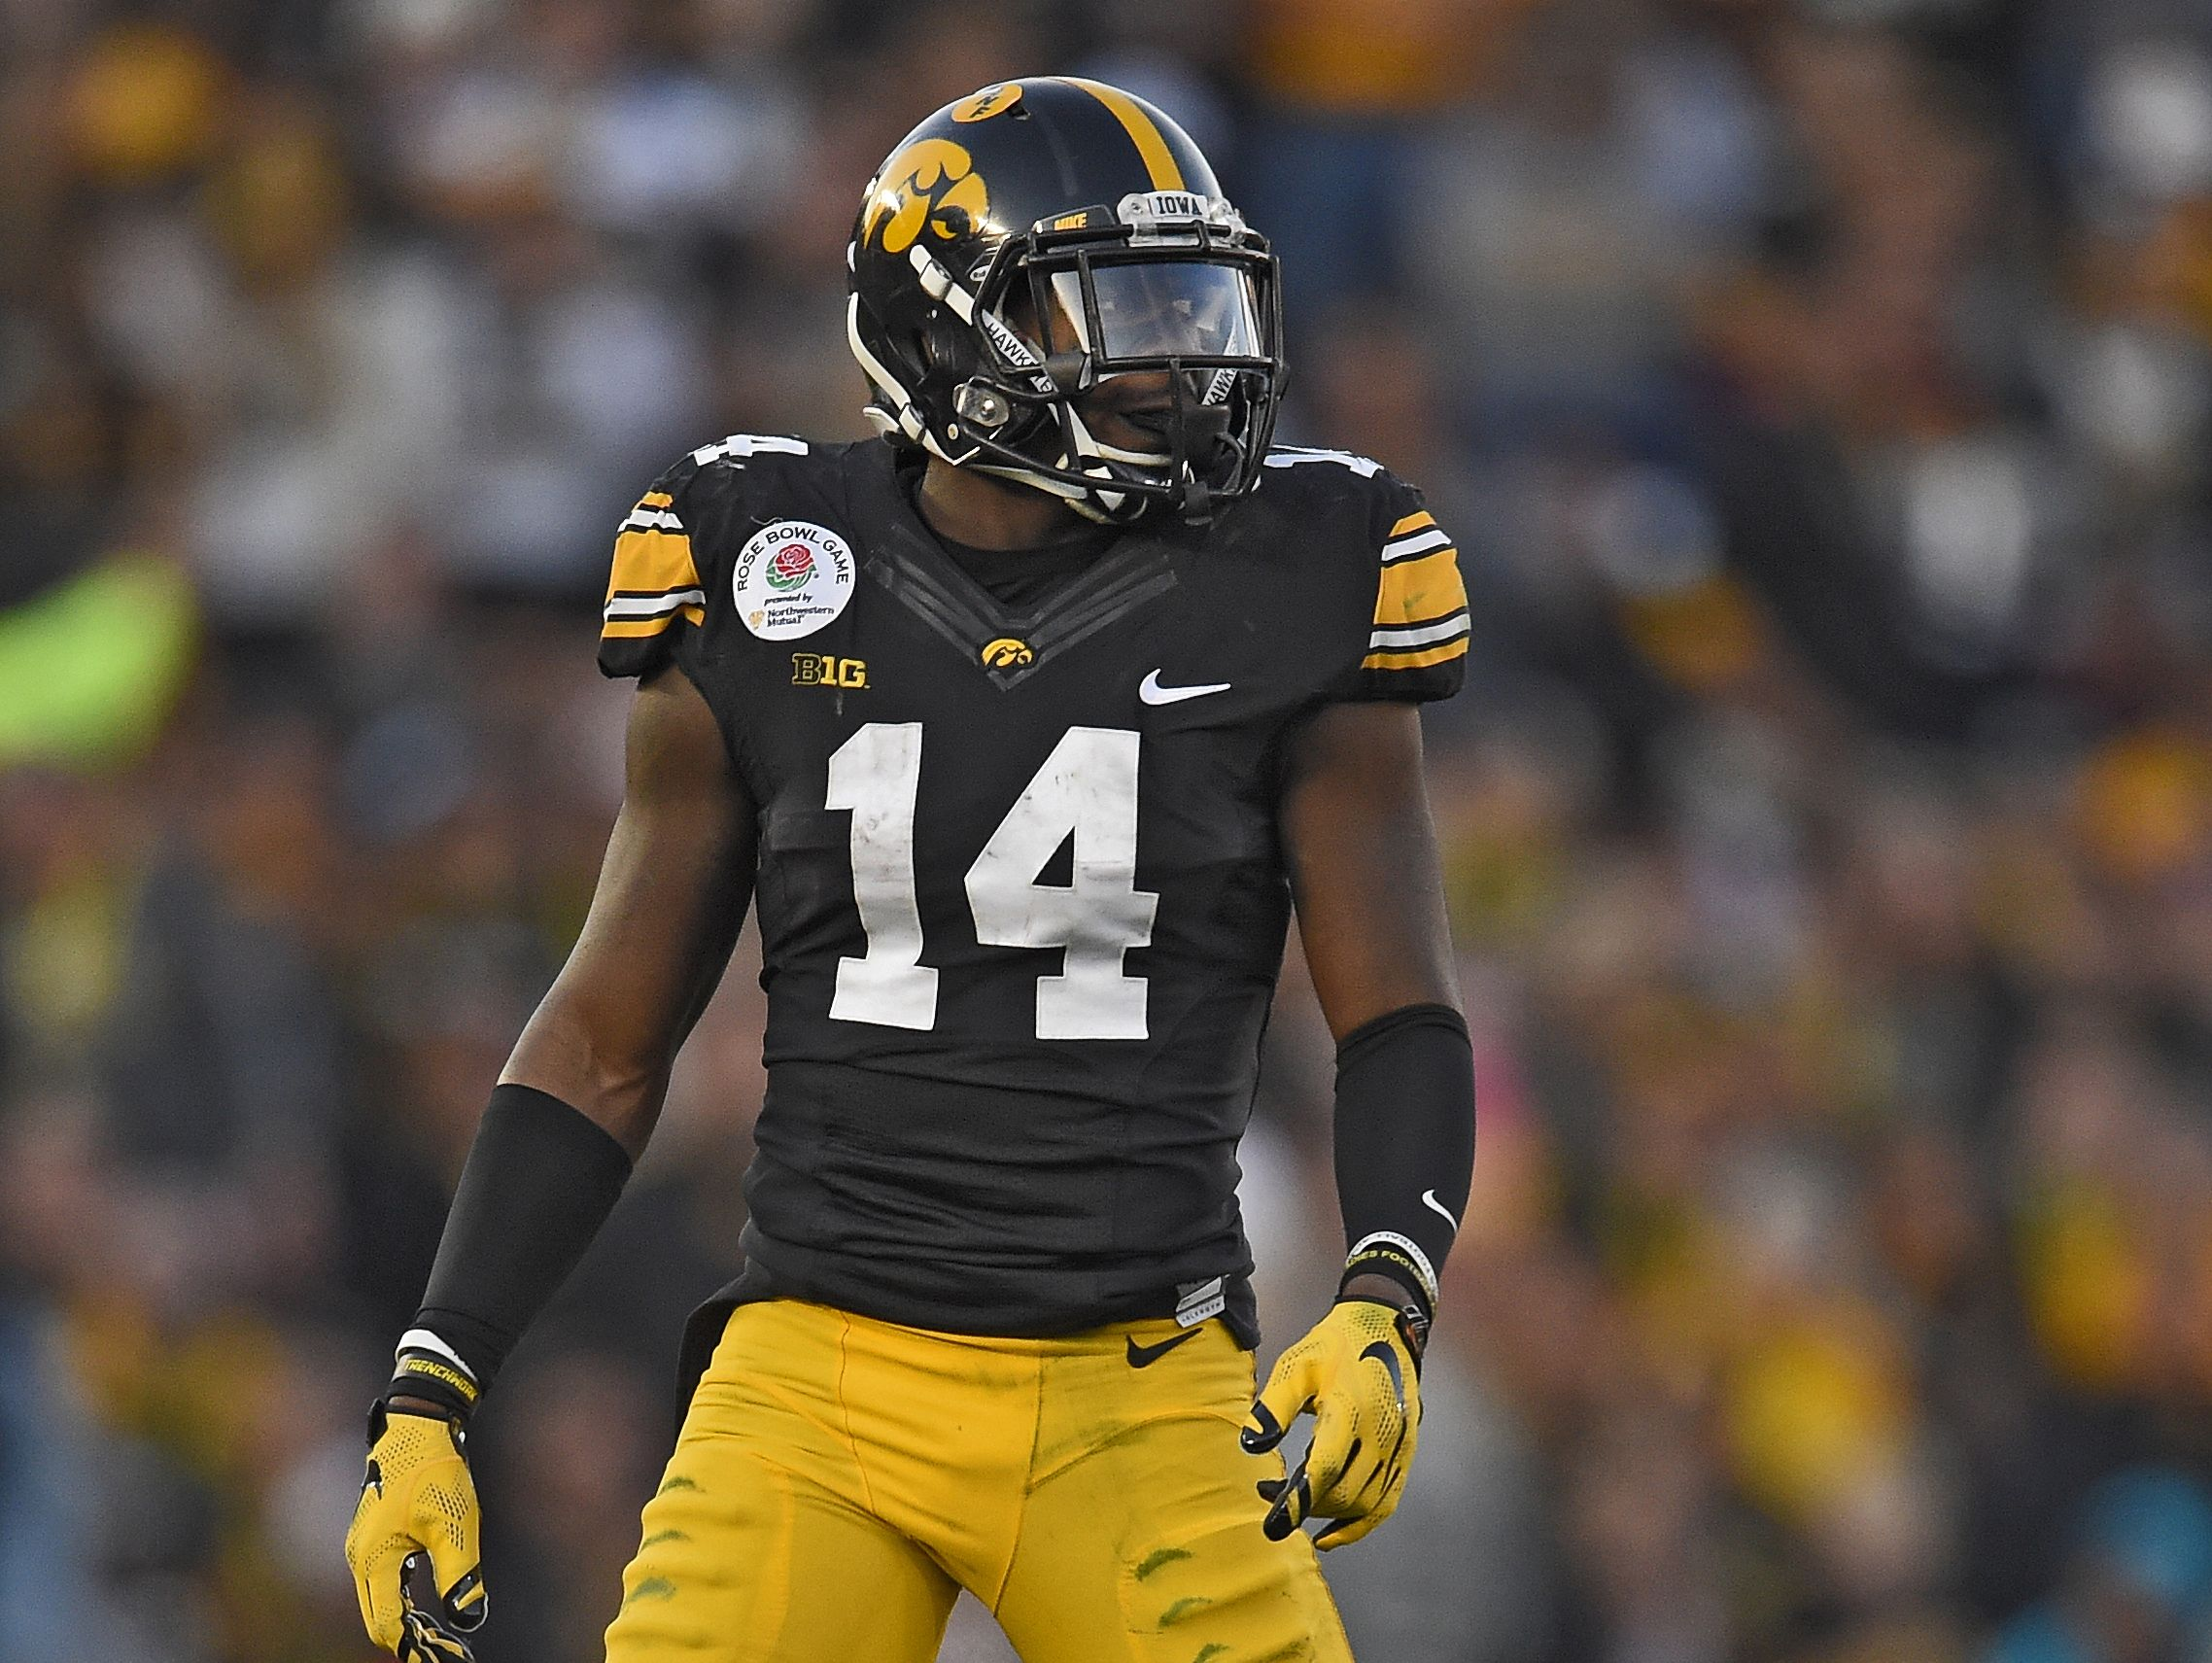 Desmond King, Iowa